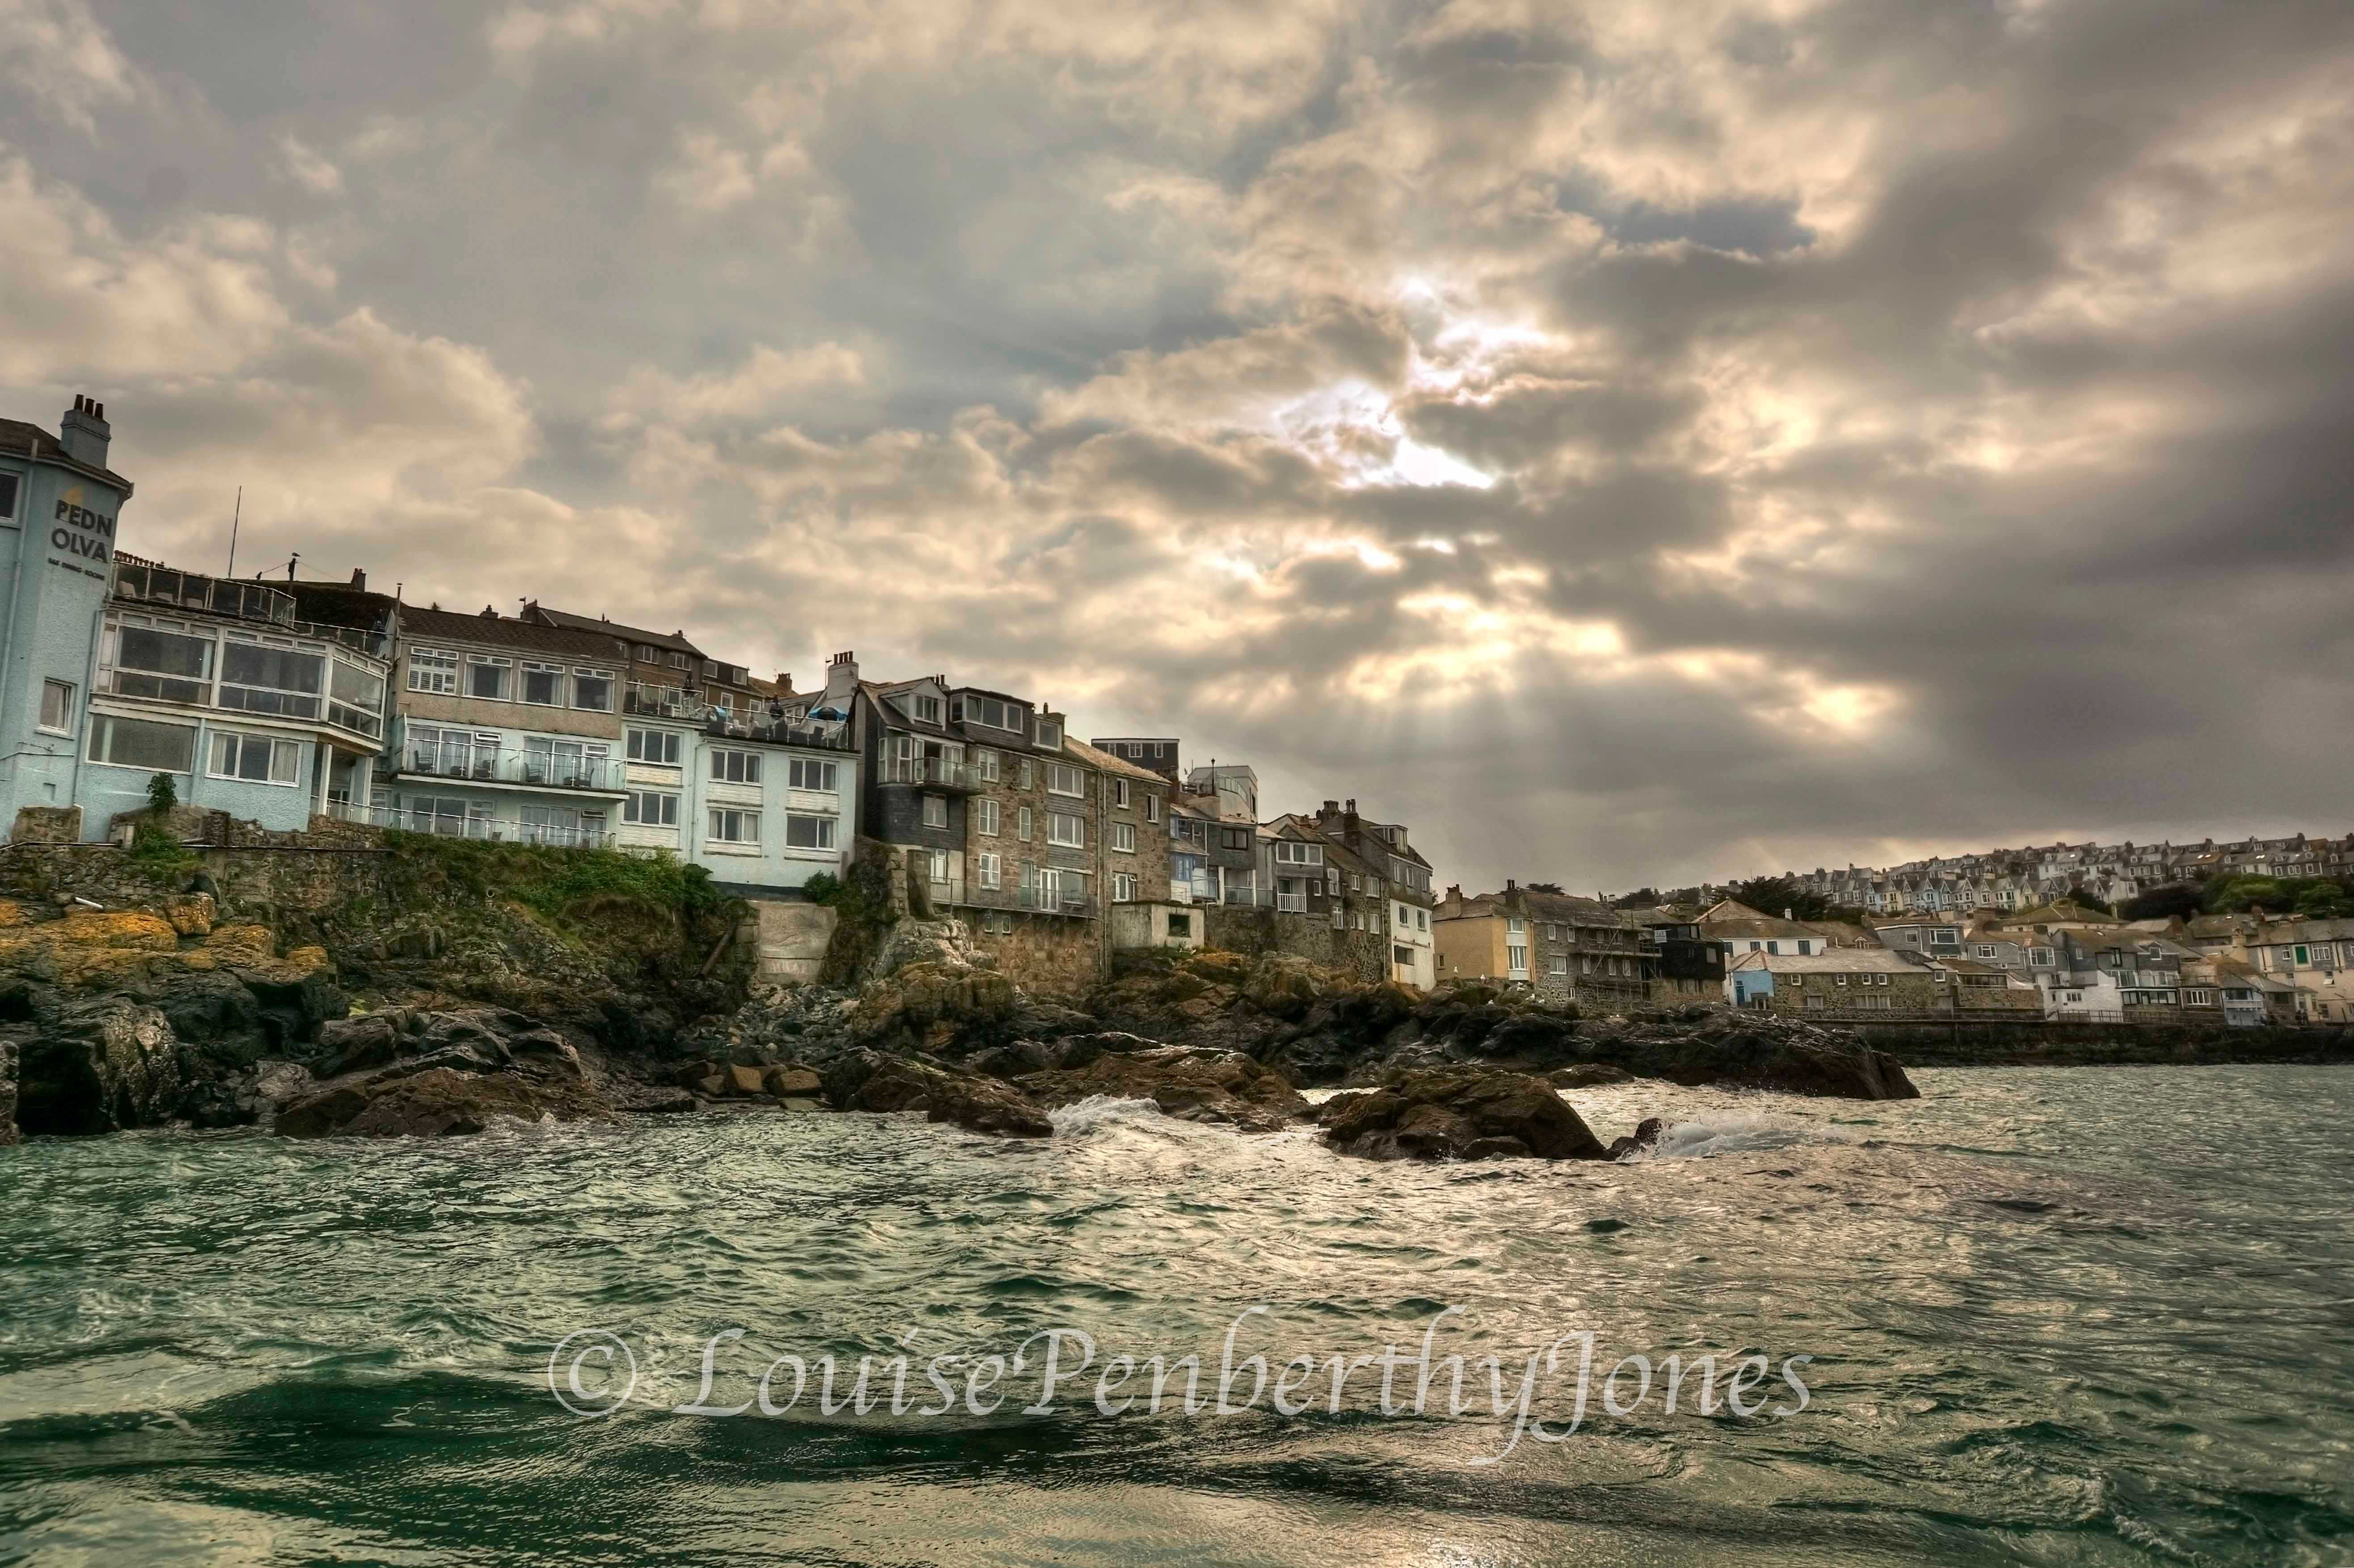 Crab Rock - St Ives